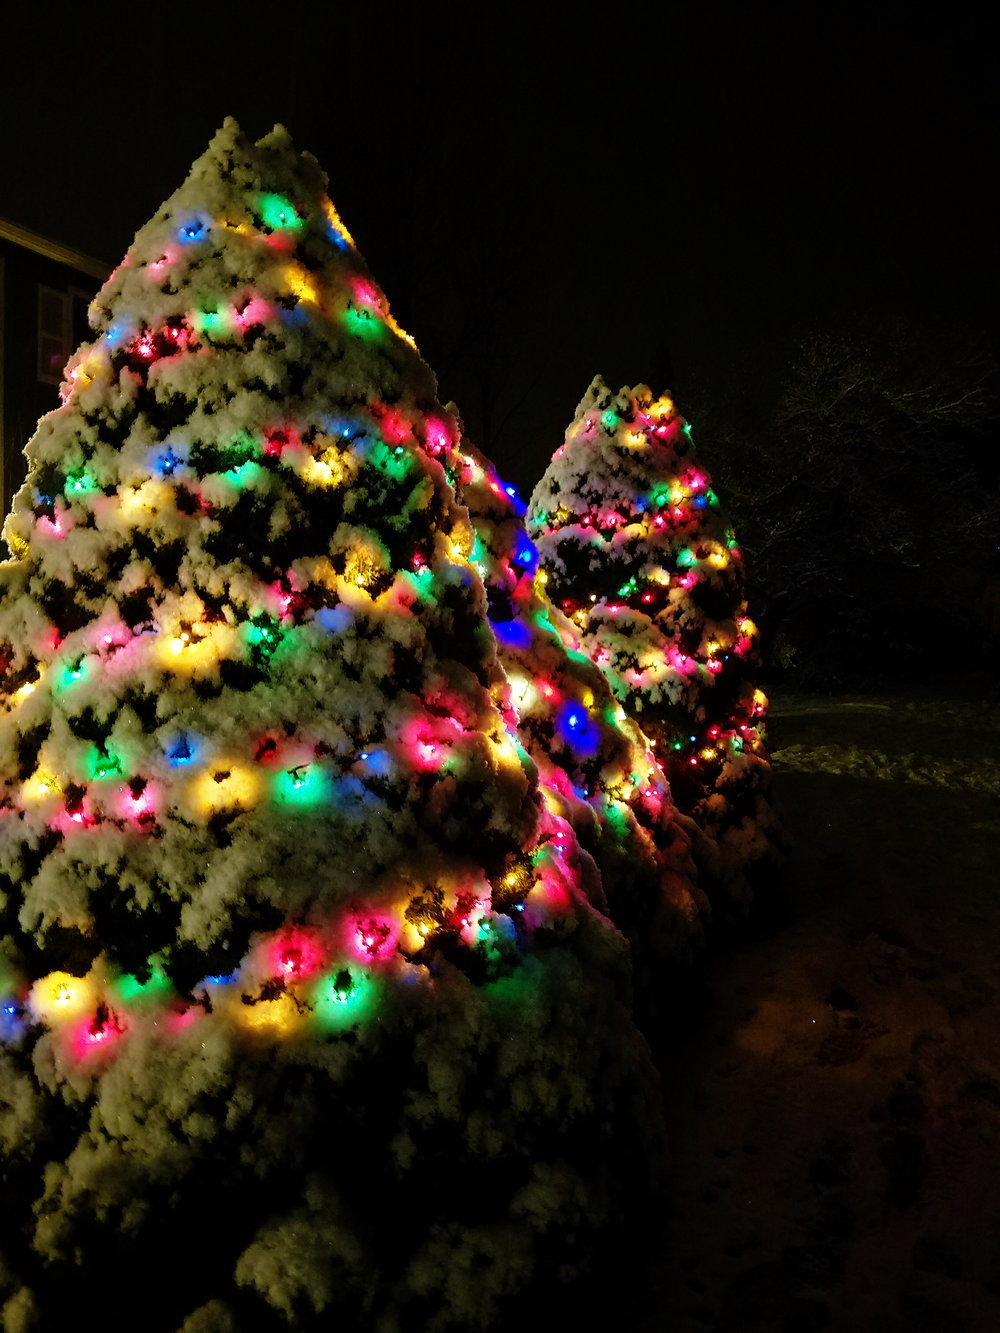 The snow covered trees made the Christmas lights look even prettier